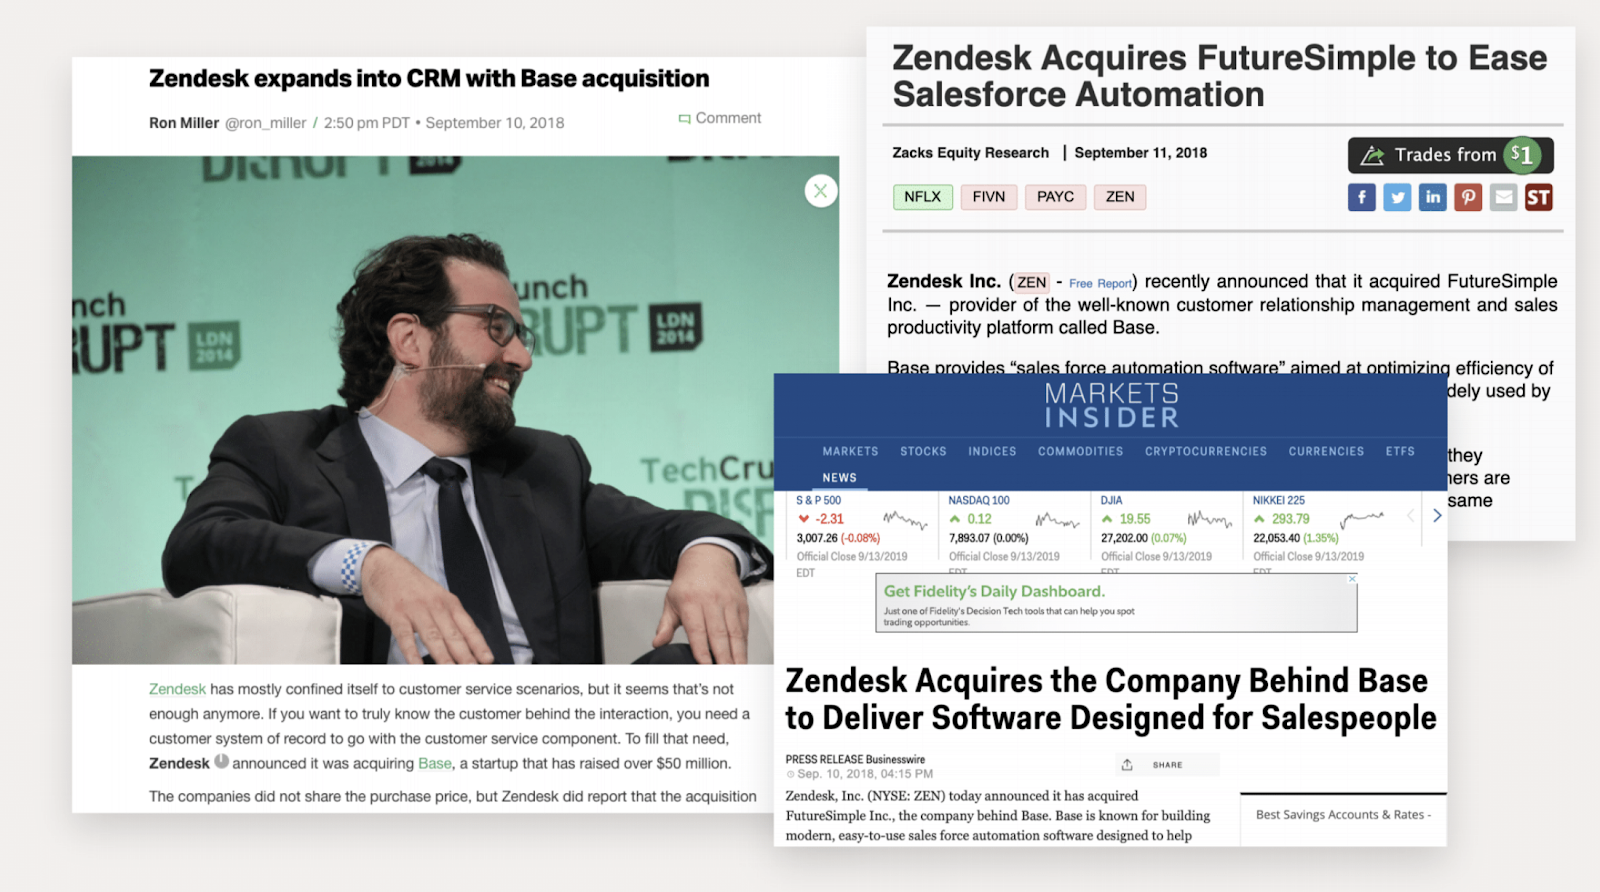 Zendesk acquires the company behind Base - news story